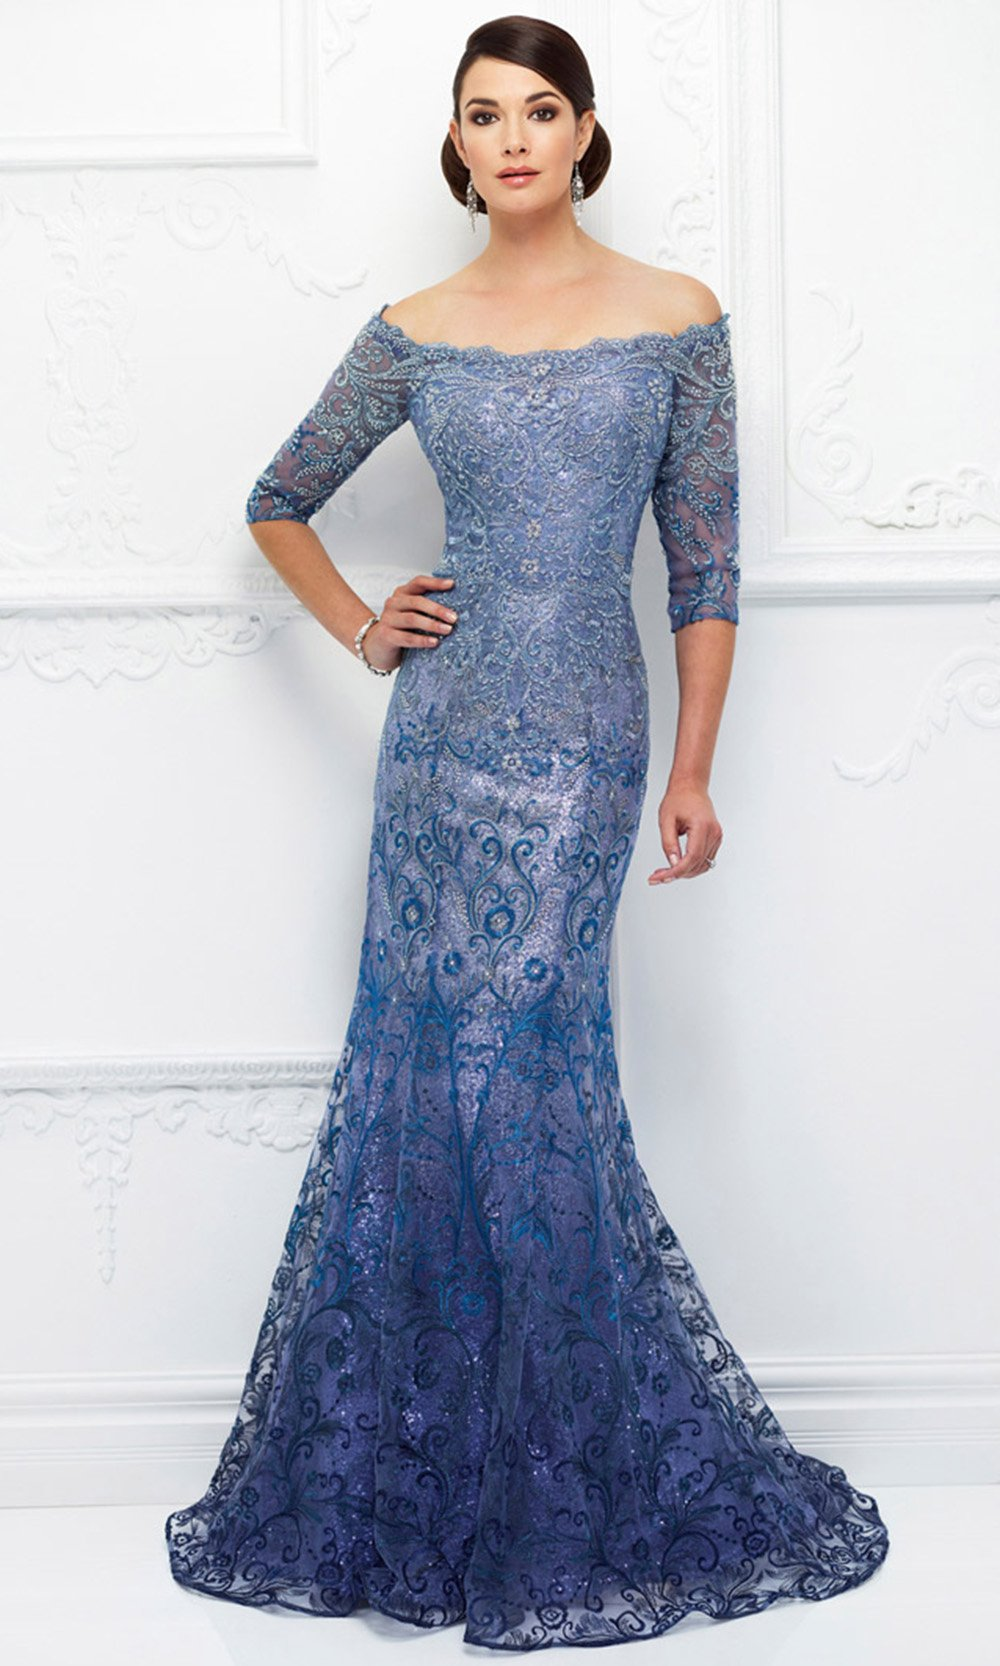 Mon Cheri - Sequined Off Shoulder Evening Gown 118D07 In Blue